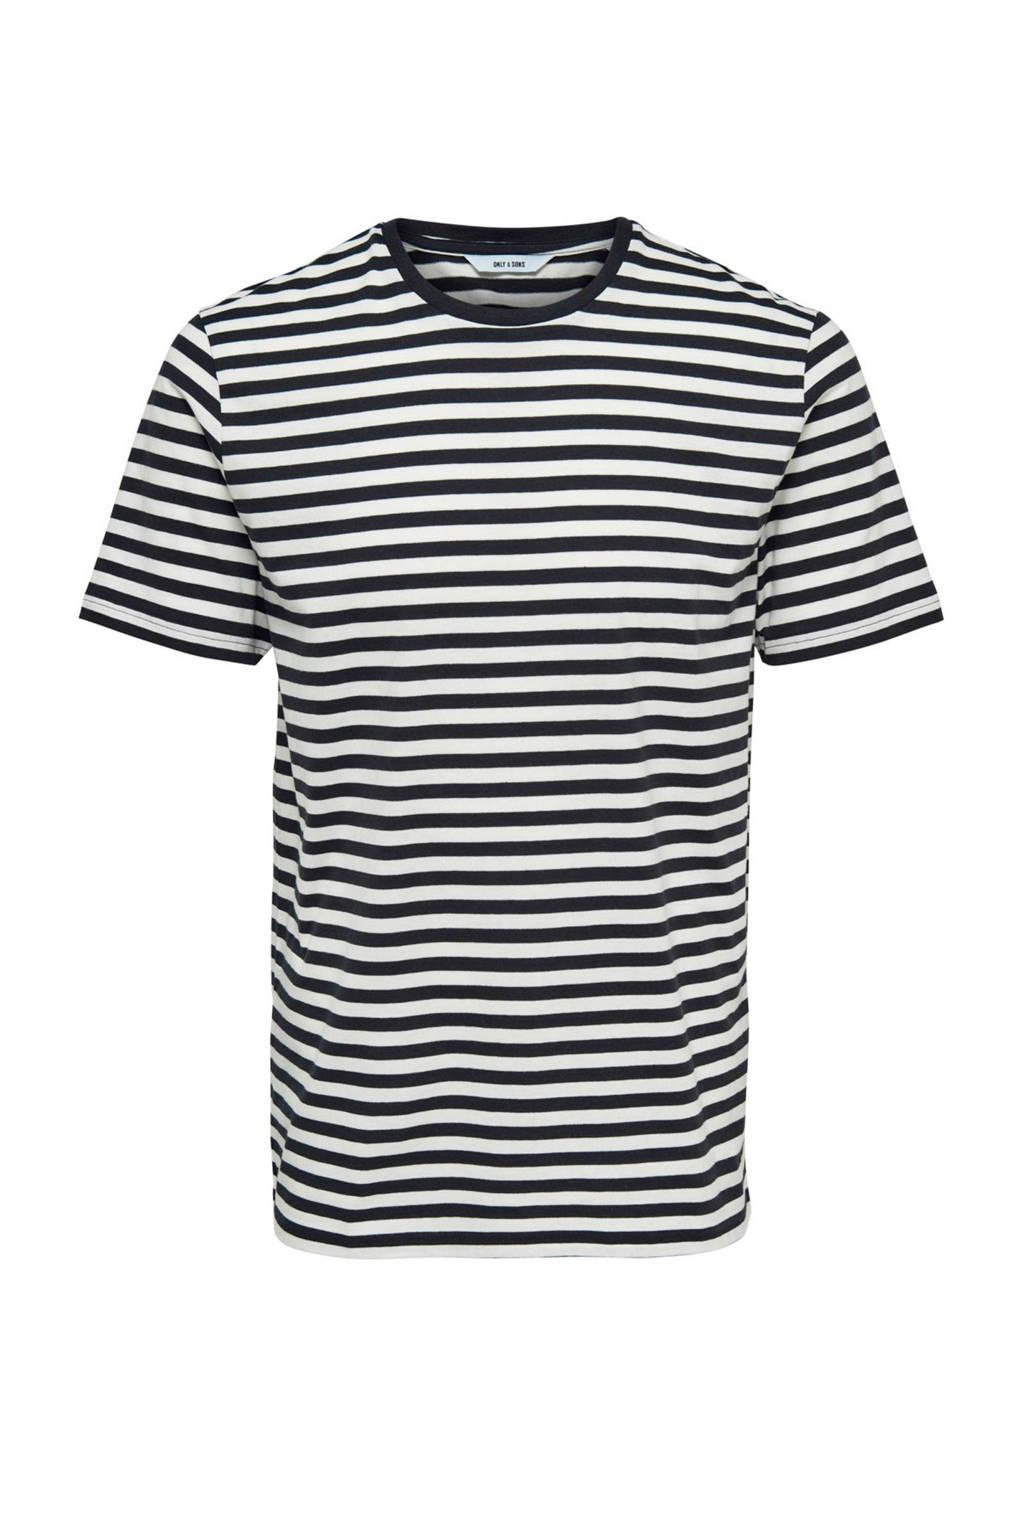 Only & Sons T-shirt met strepen marine, Marine/wit